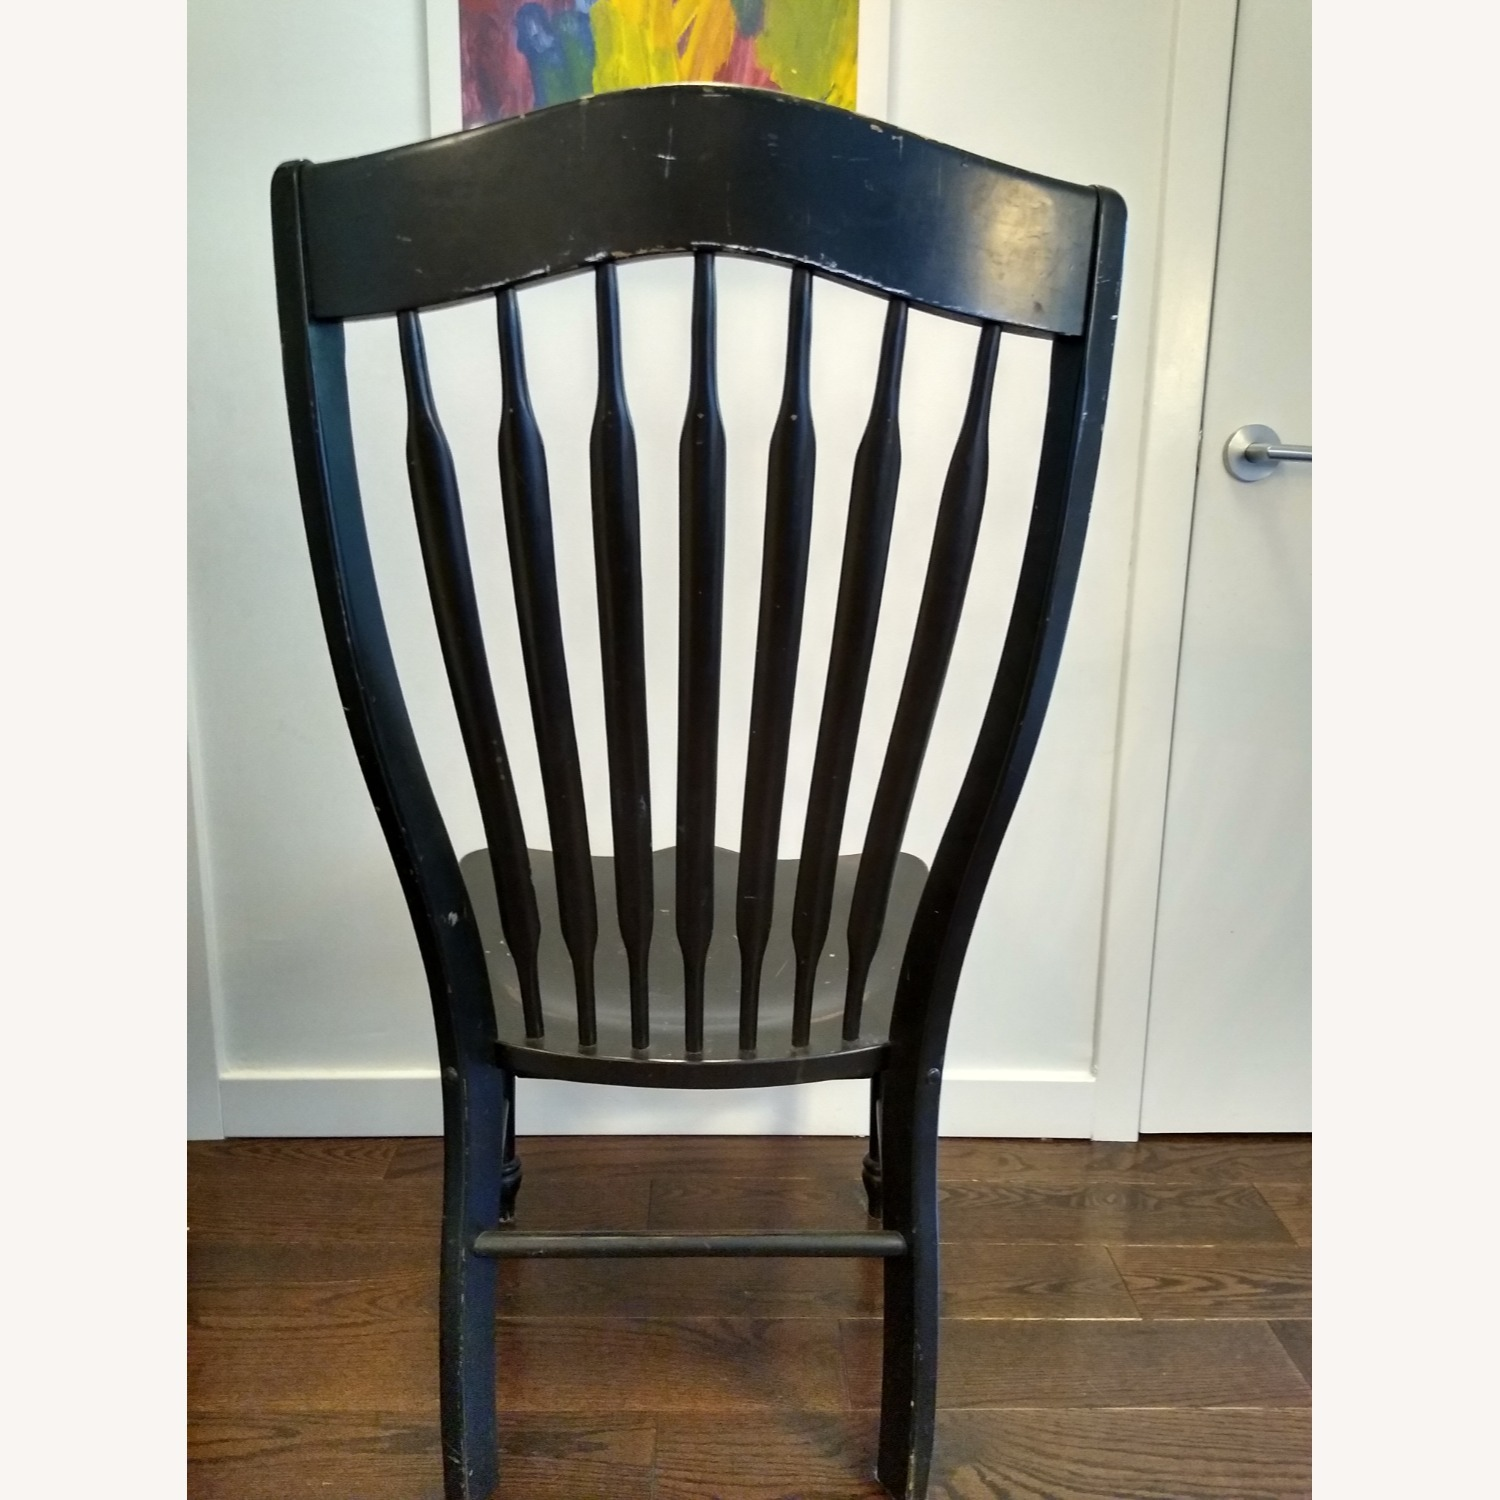 Five Vintage Nichols & Stone Windsor Chairs - image-3